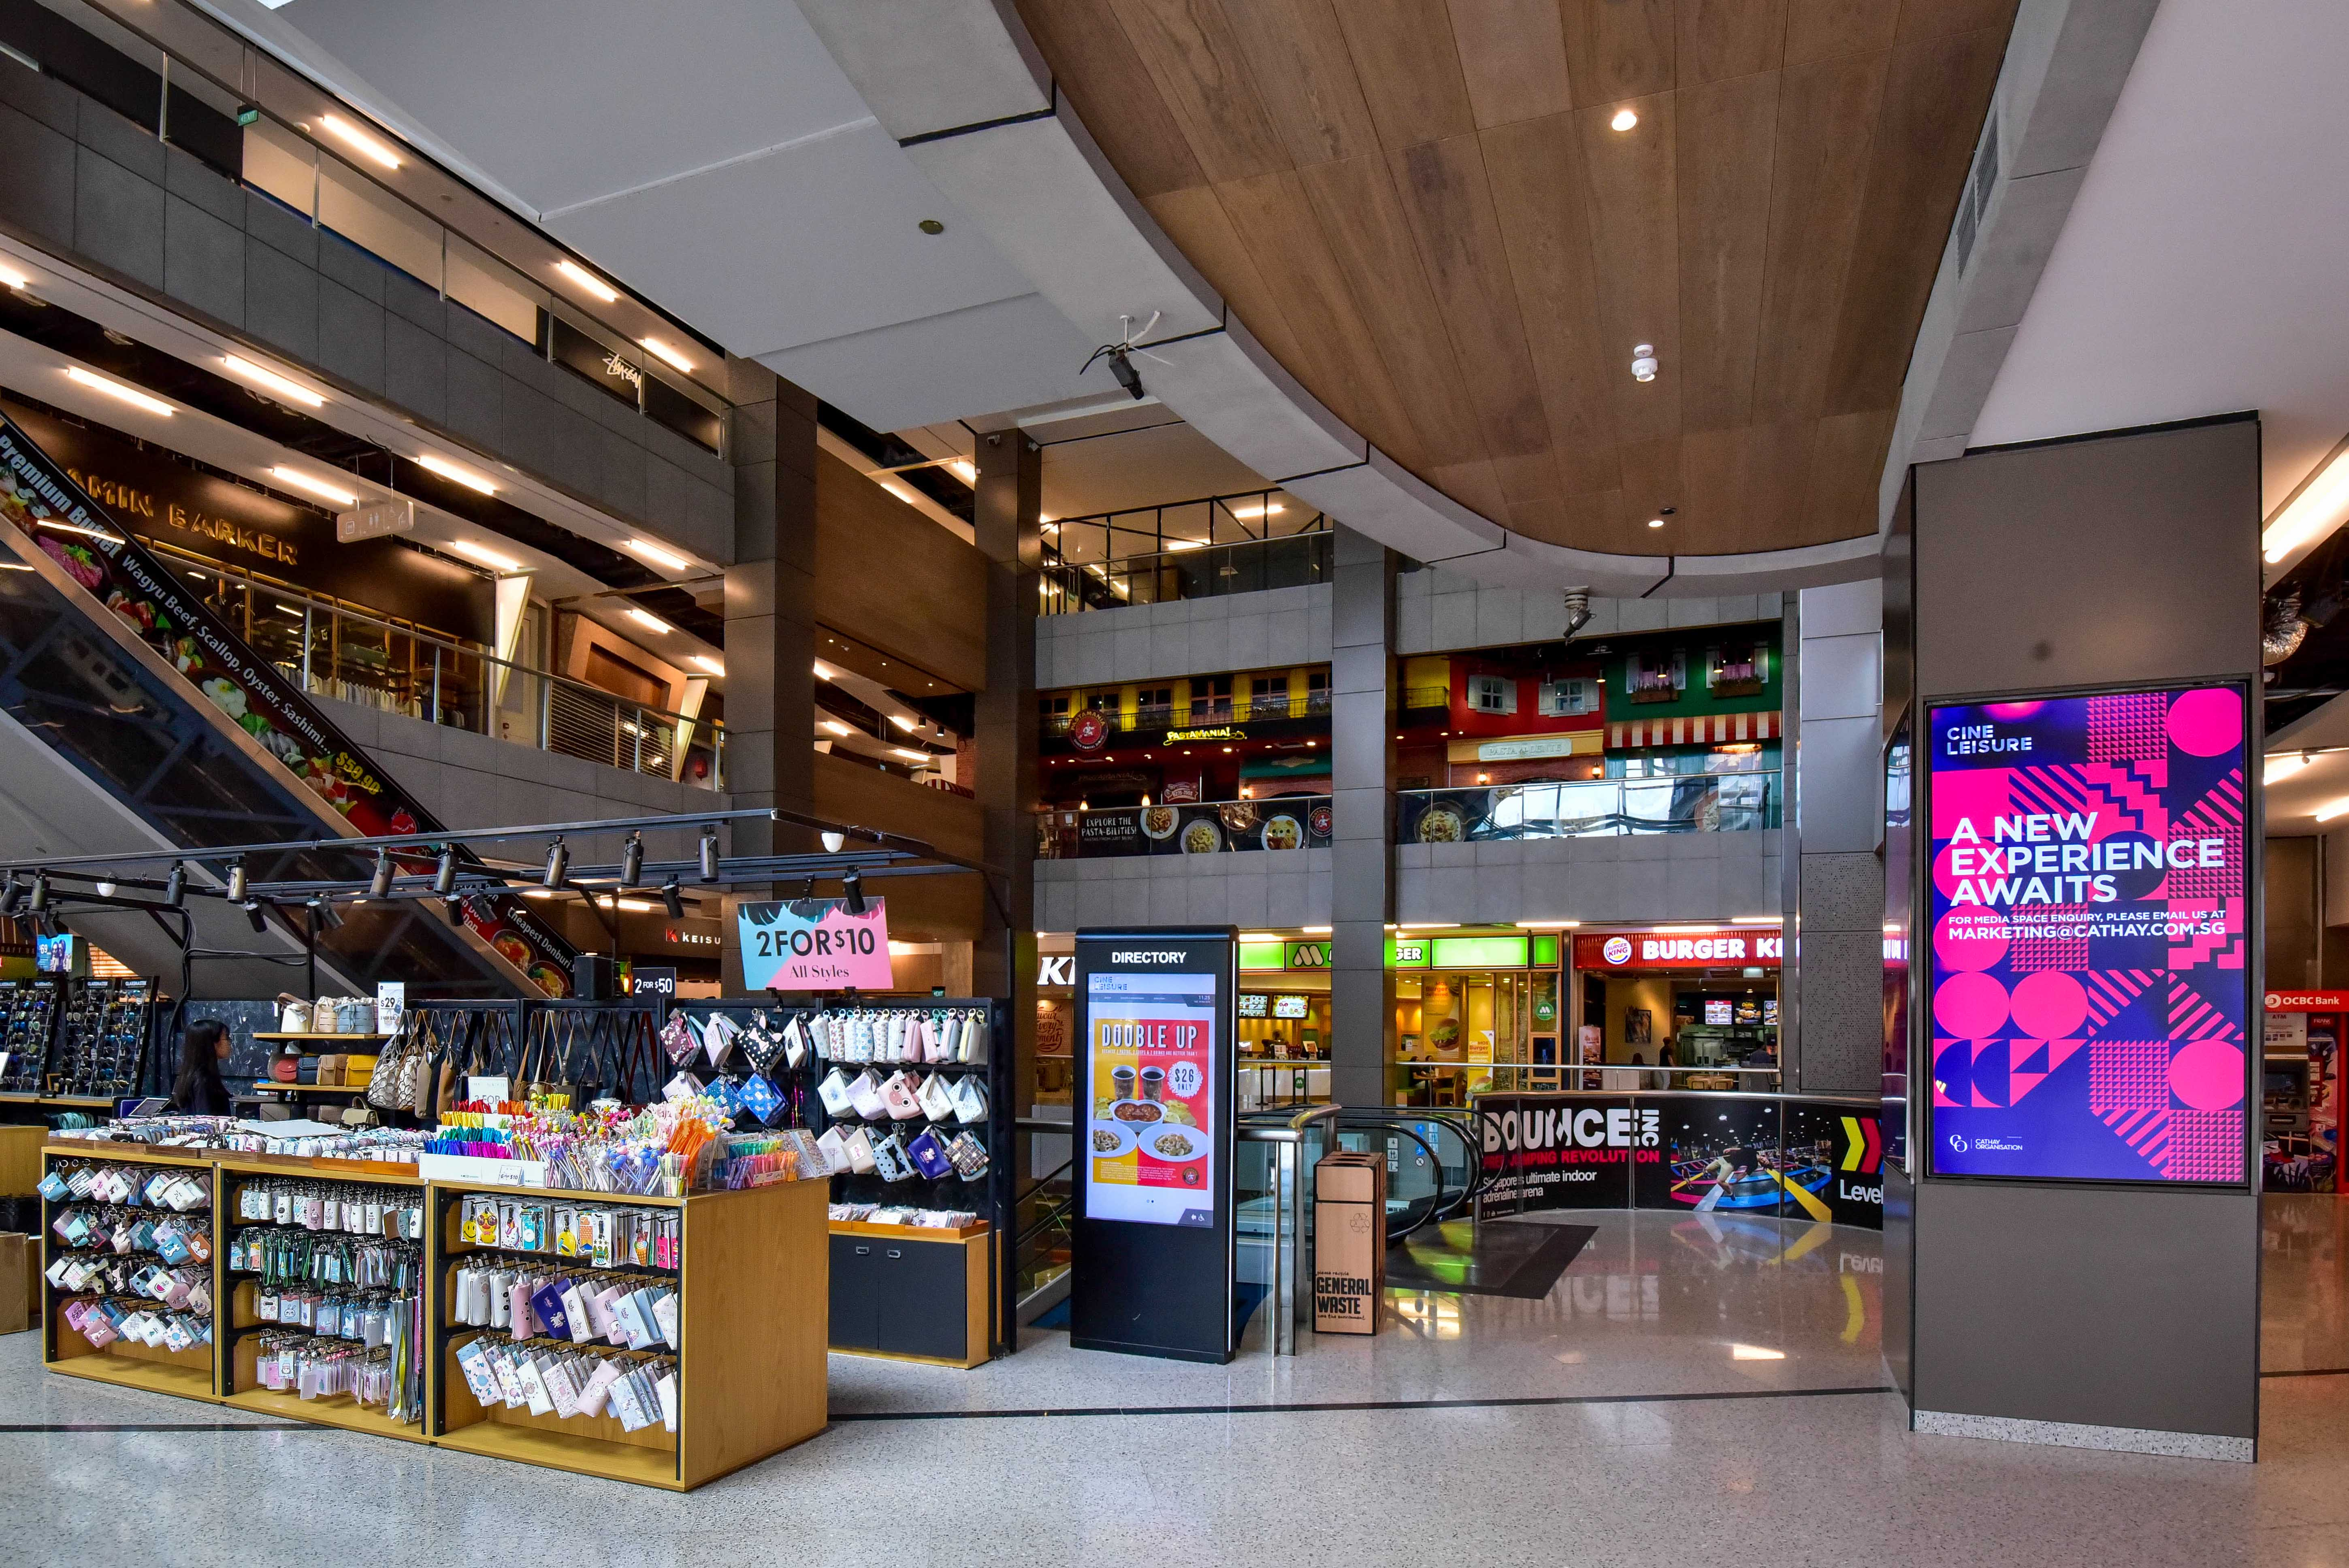 [Promo Inside] Cineleisure mall unveils everything new: Look, tenants, redemption app, and giveaways - Alvinology